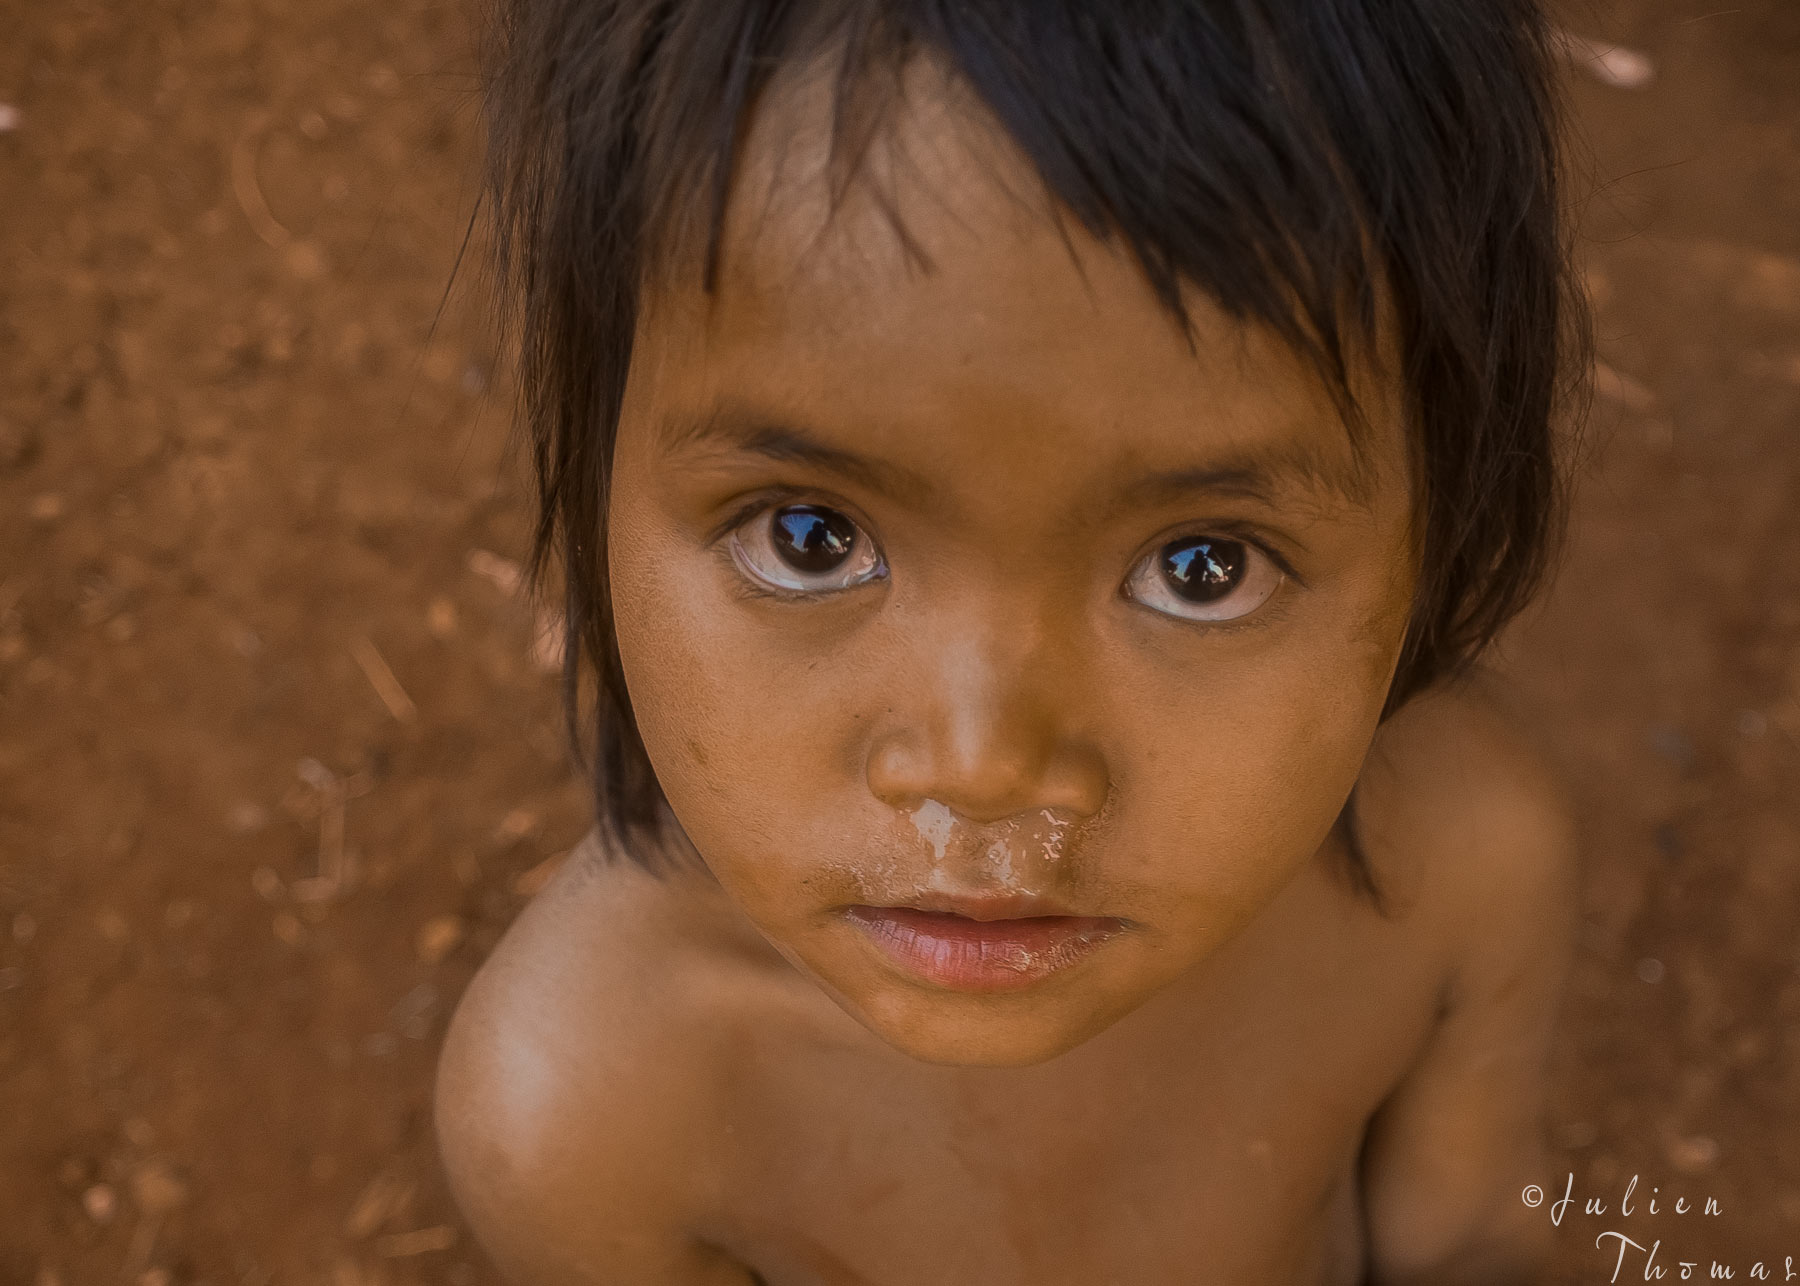 Underprivileged child from an animist Katou minority in Laos, staring at the photographer and its camera. Its possible to shape Julien Thomas in her eyes.